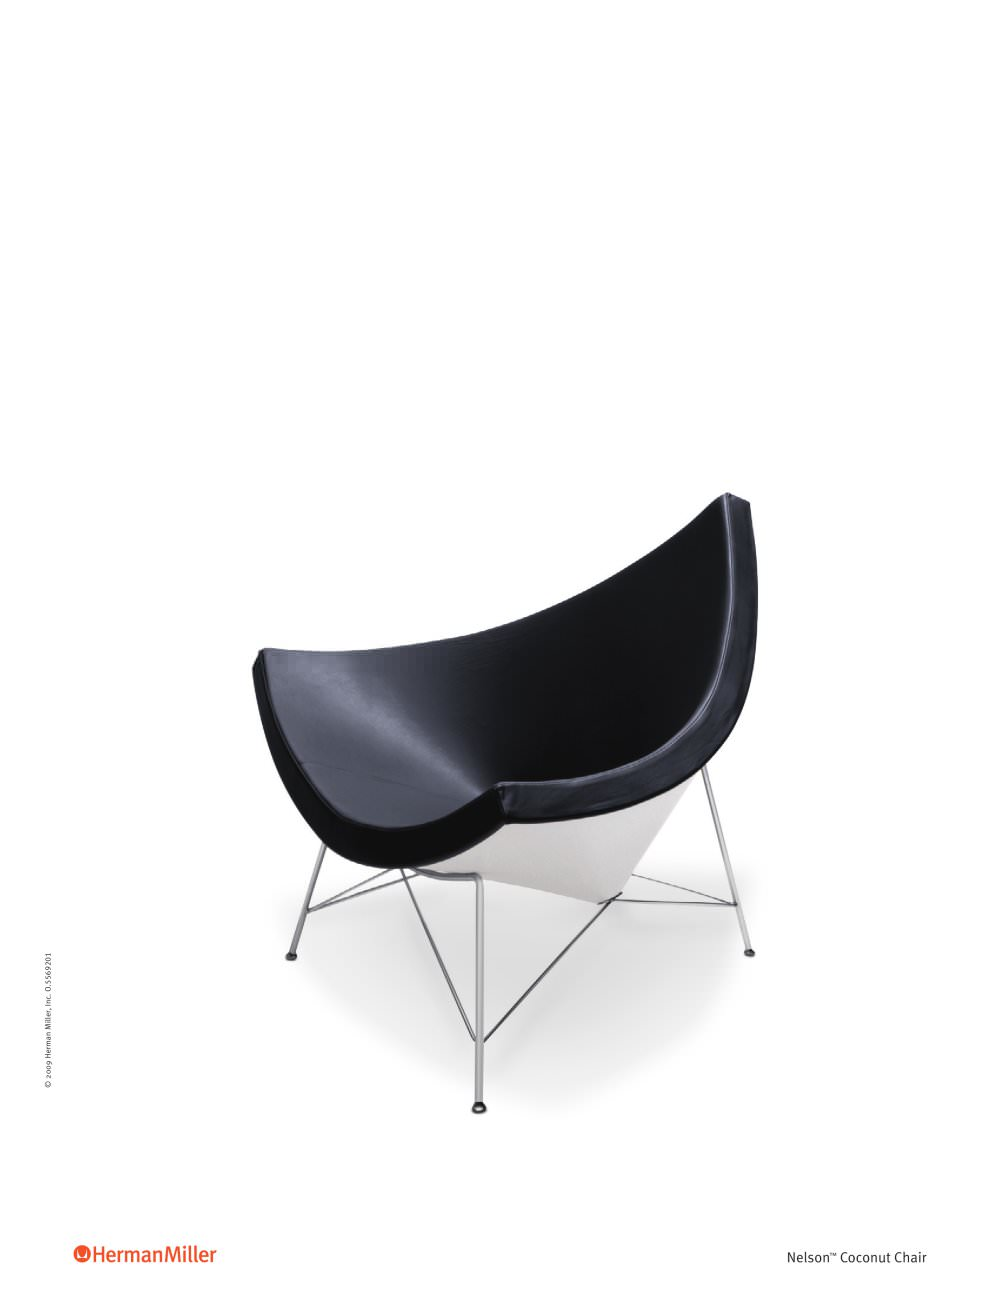 Superb Nelson Coconut Lounge Chair   1 / 2 Pages